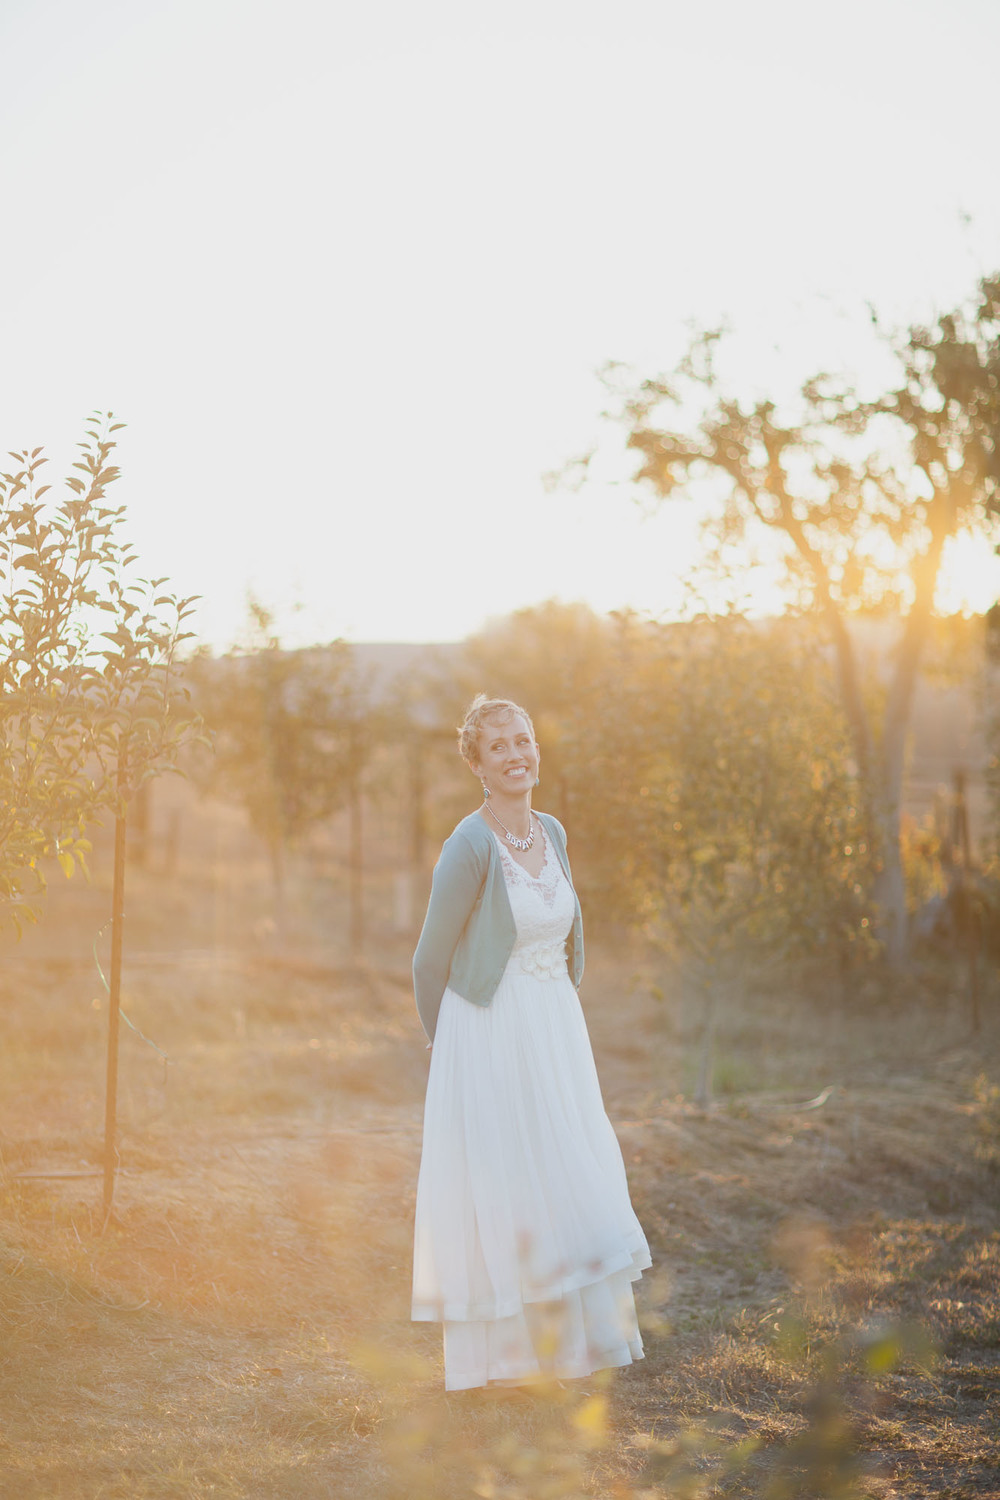 Gretchen_Gause_Petaluma_Olympias_Valley_Wedding_Photo-198.jpg